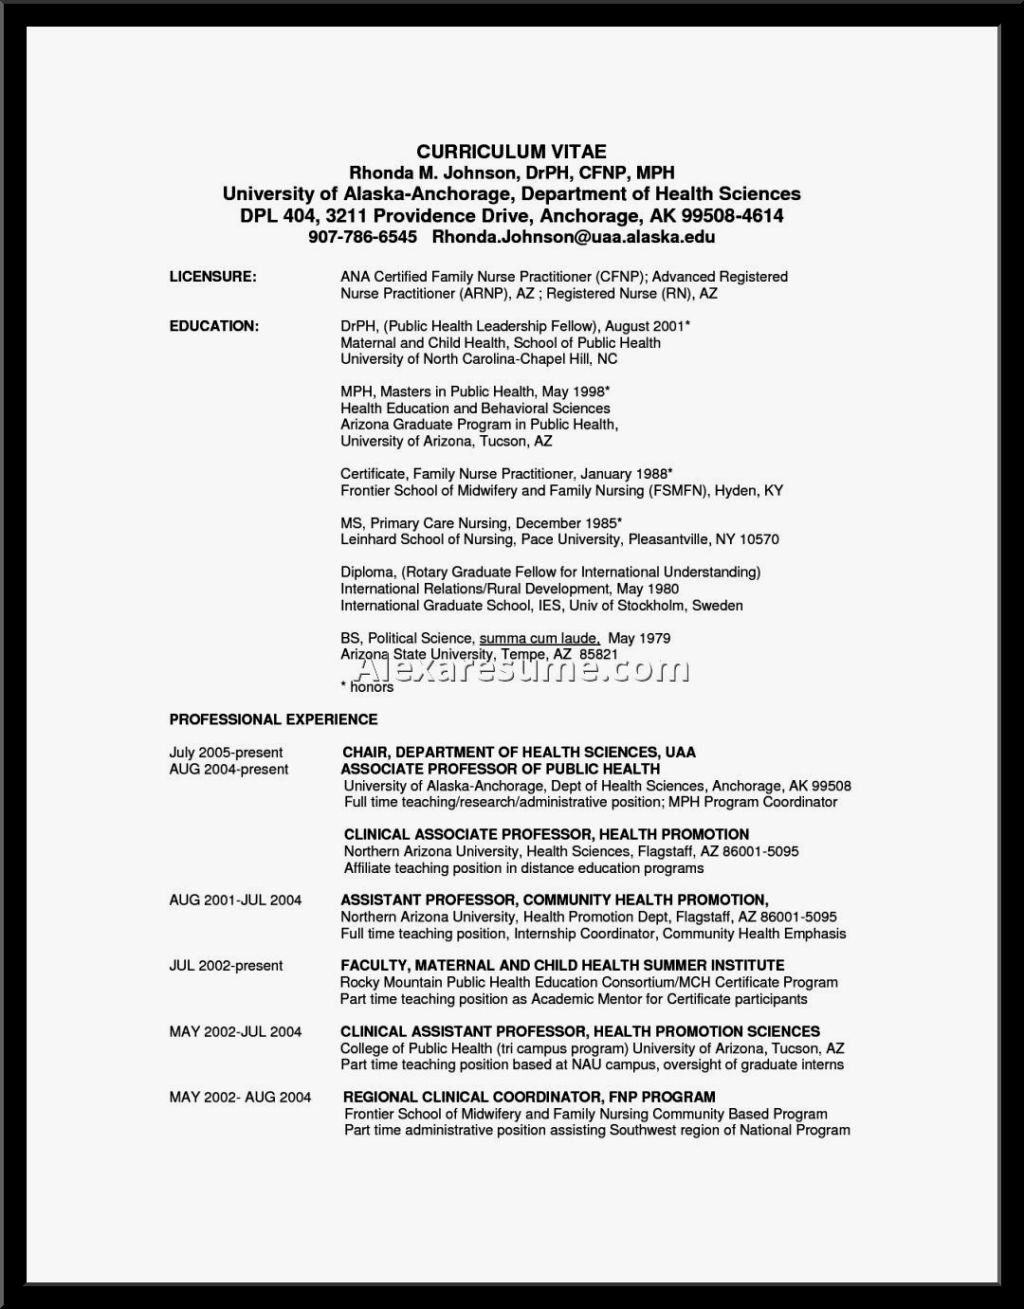 23 Public Health Resume Examples in 2020 Resume examples